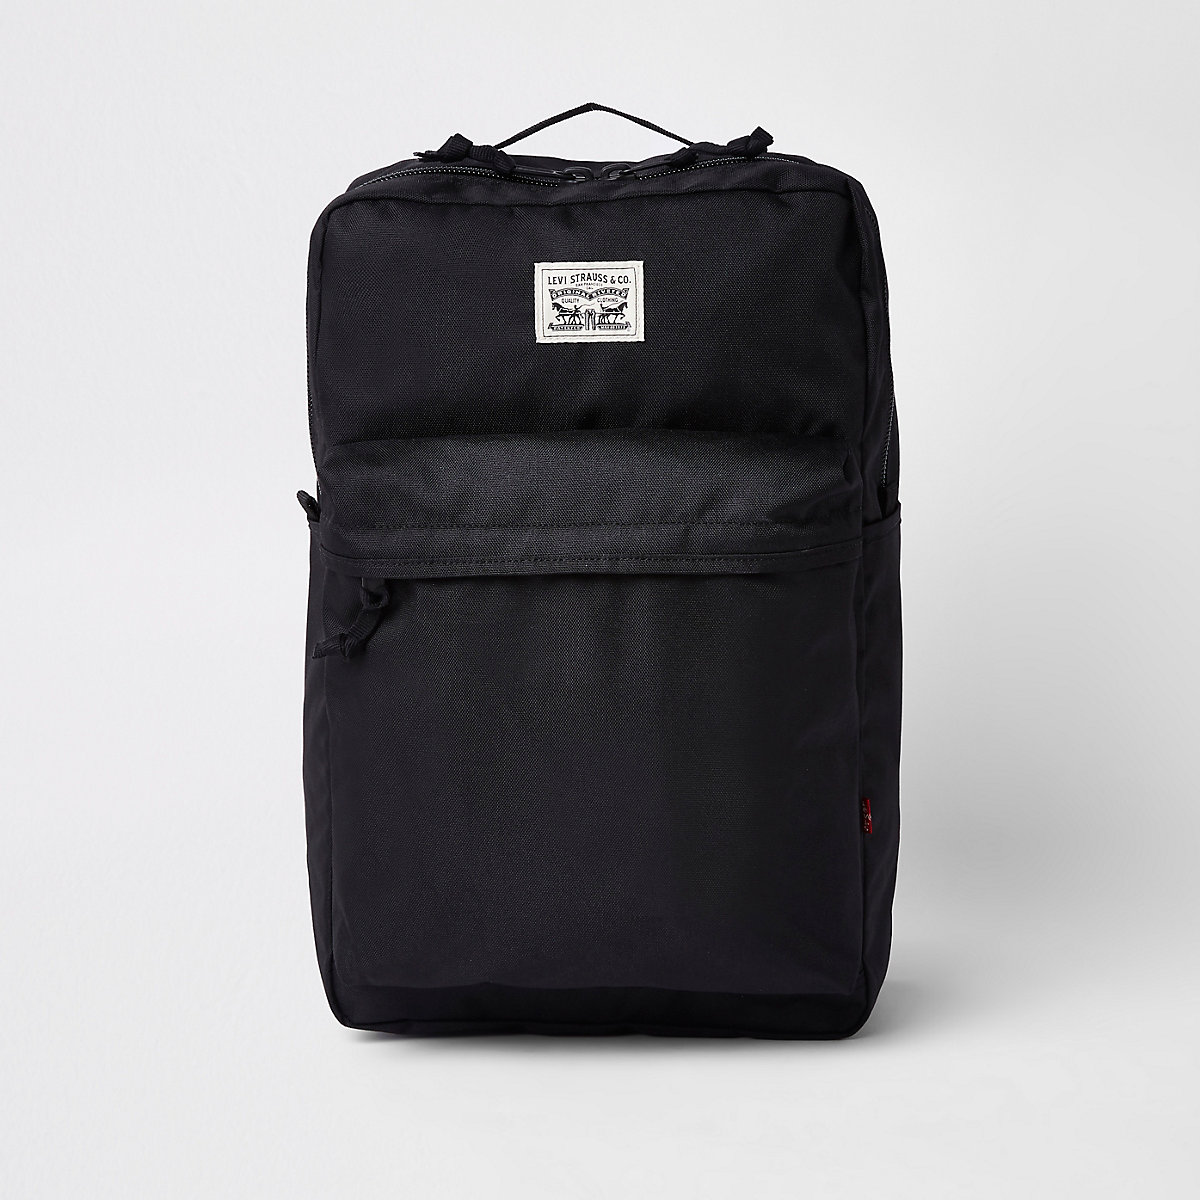 Levi's black backpack